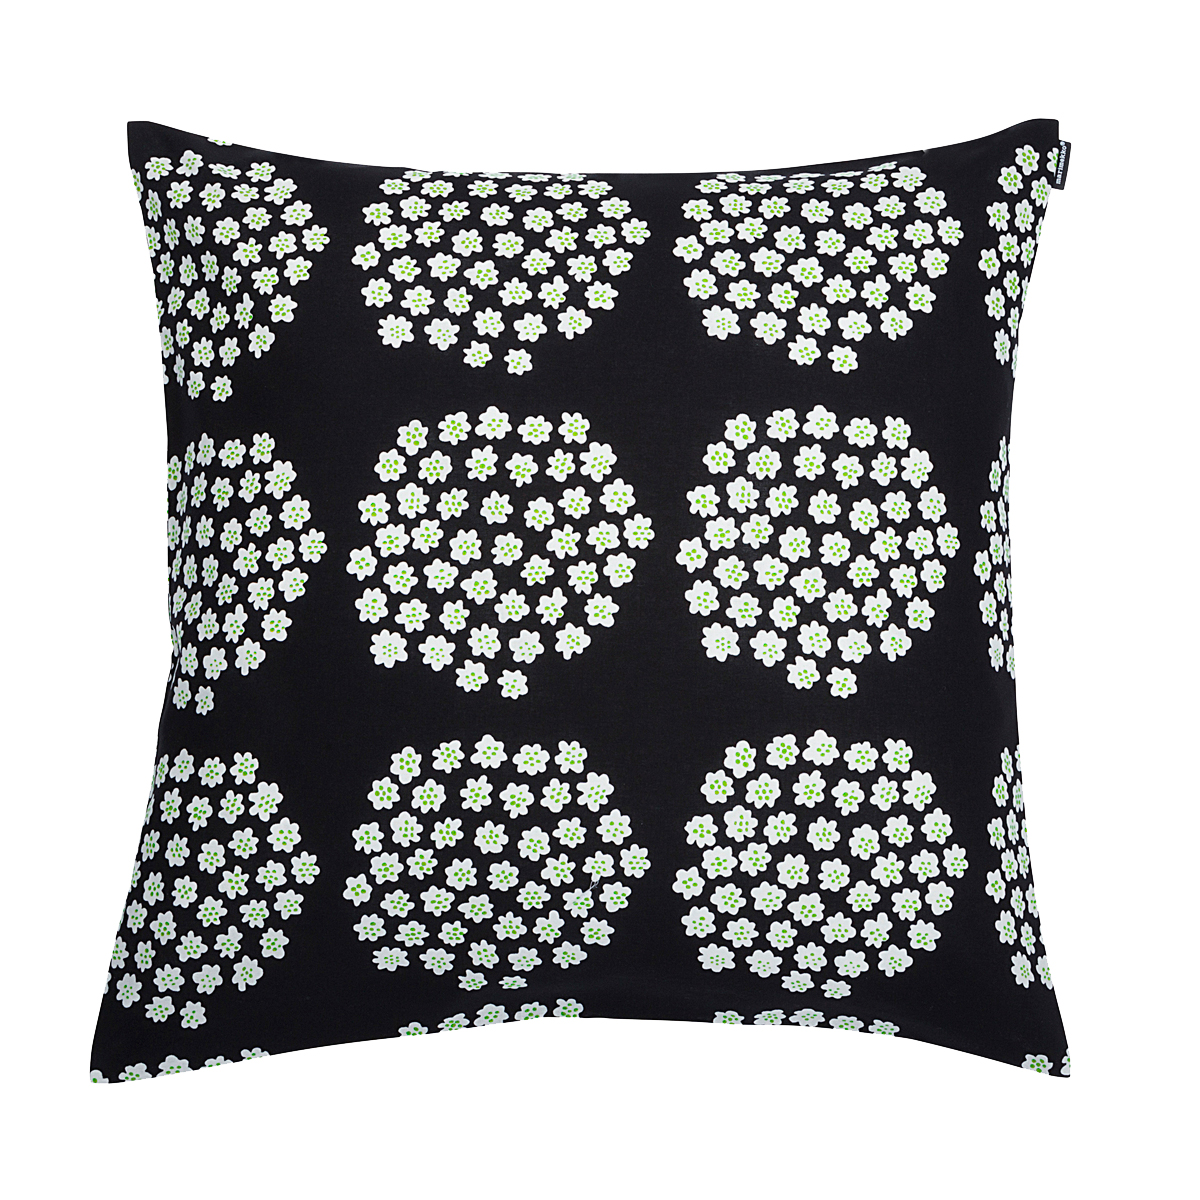 throws pillow decorative pinterest on pzforest pillows green best throw images